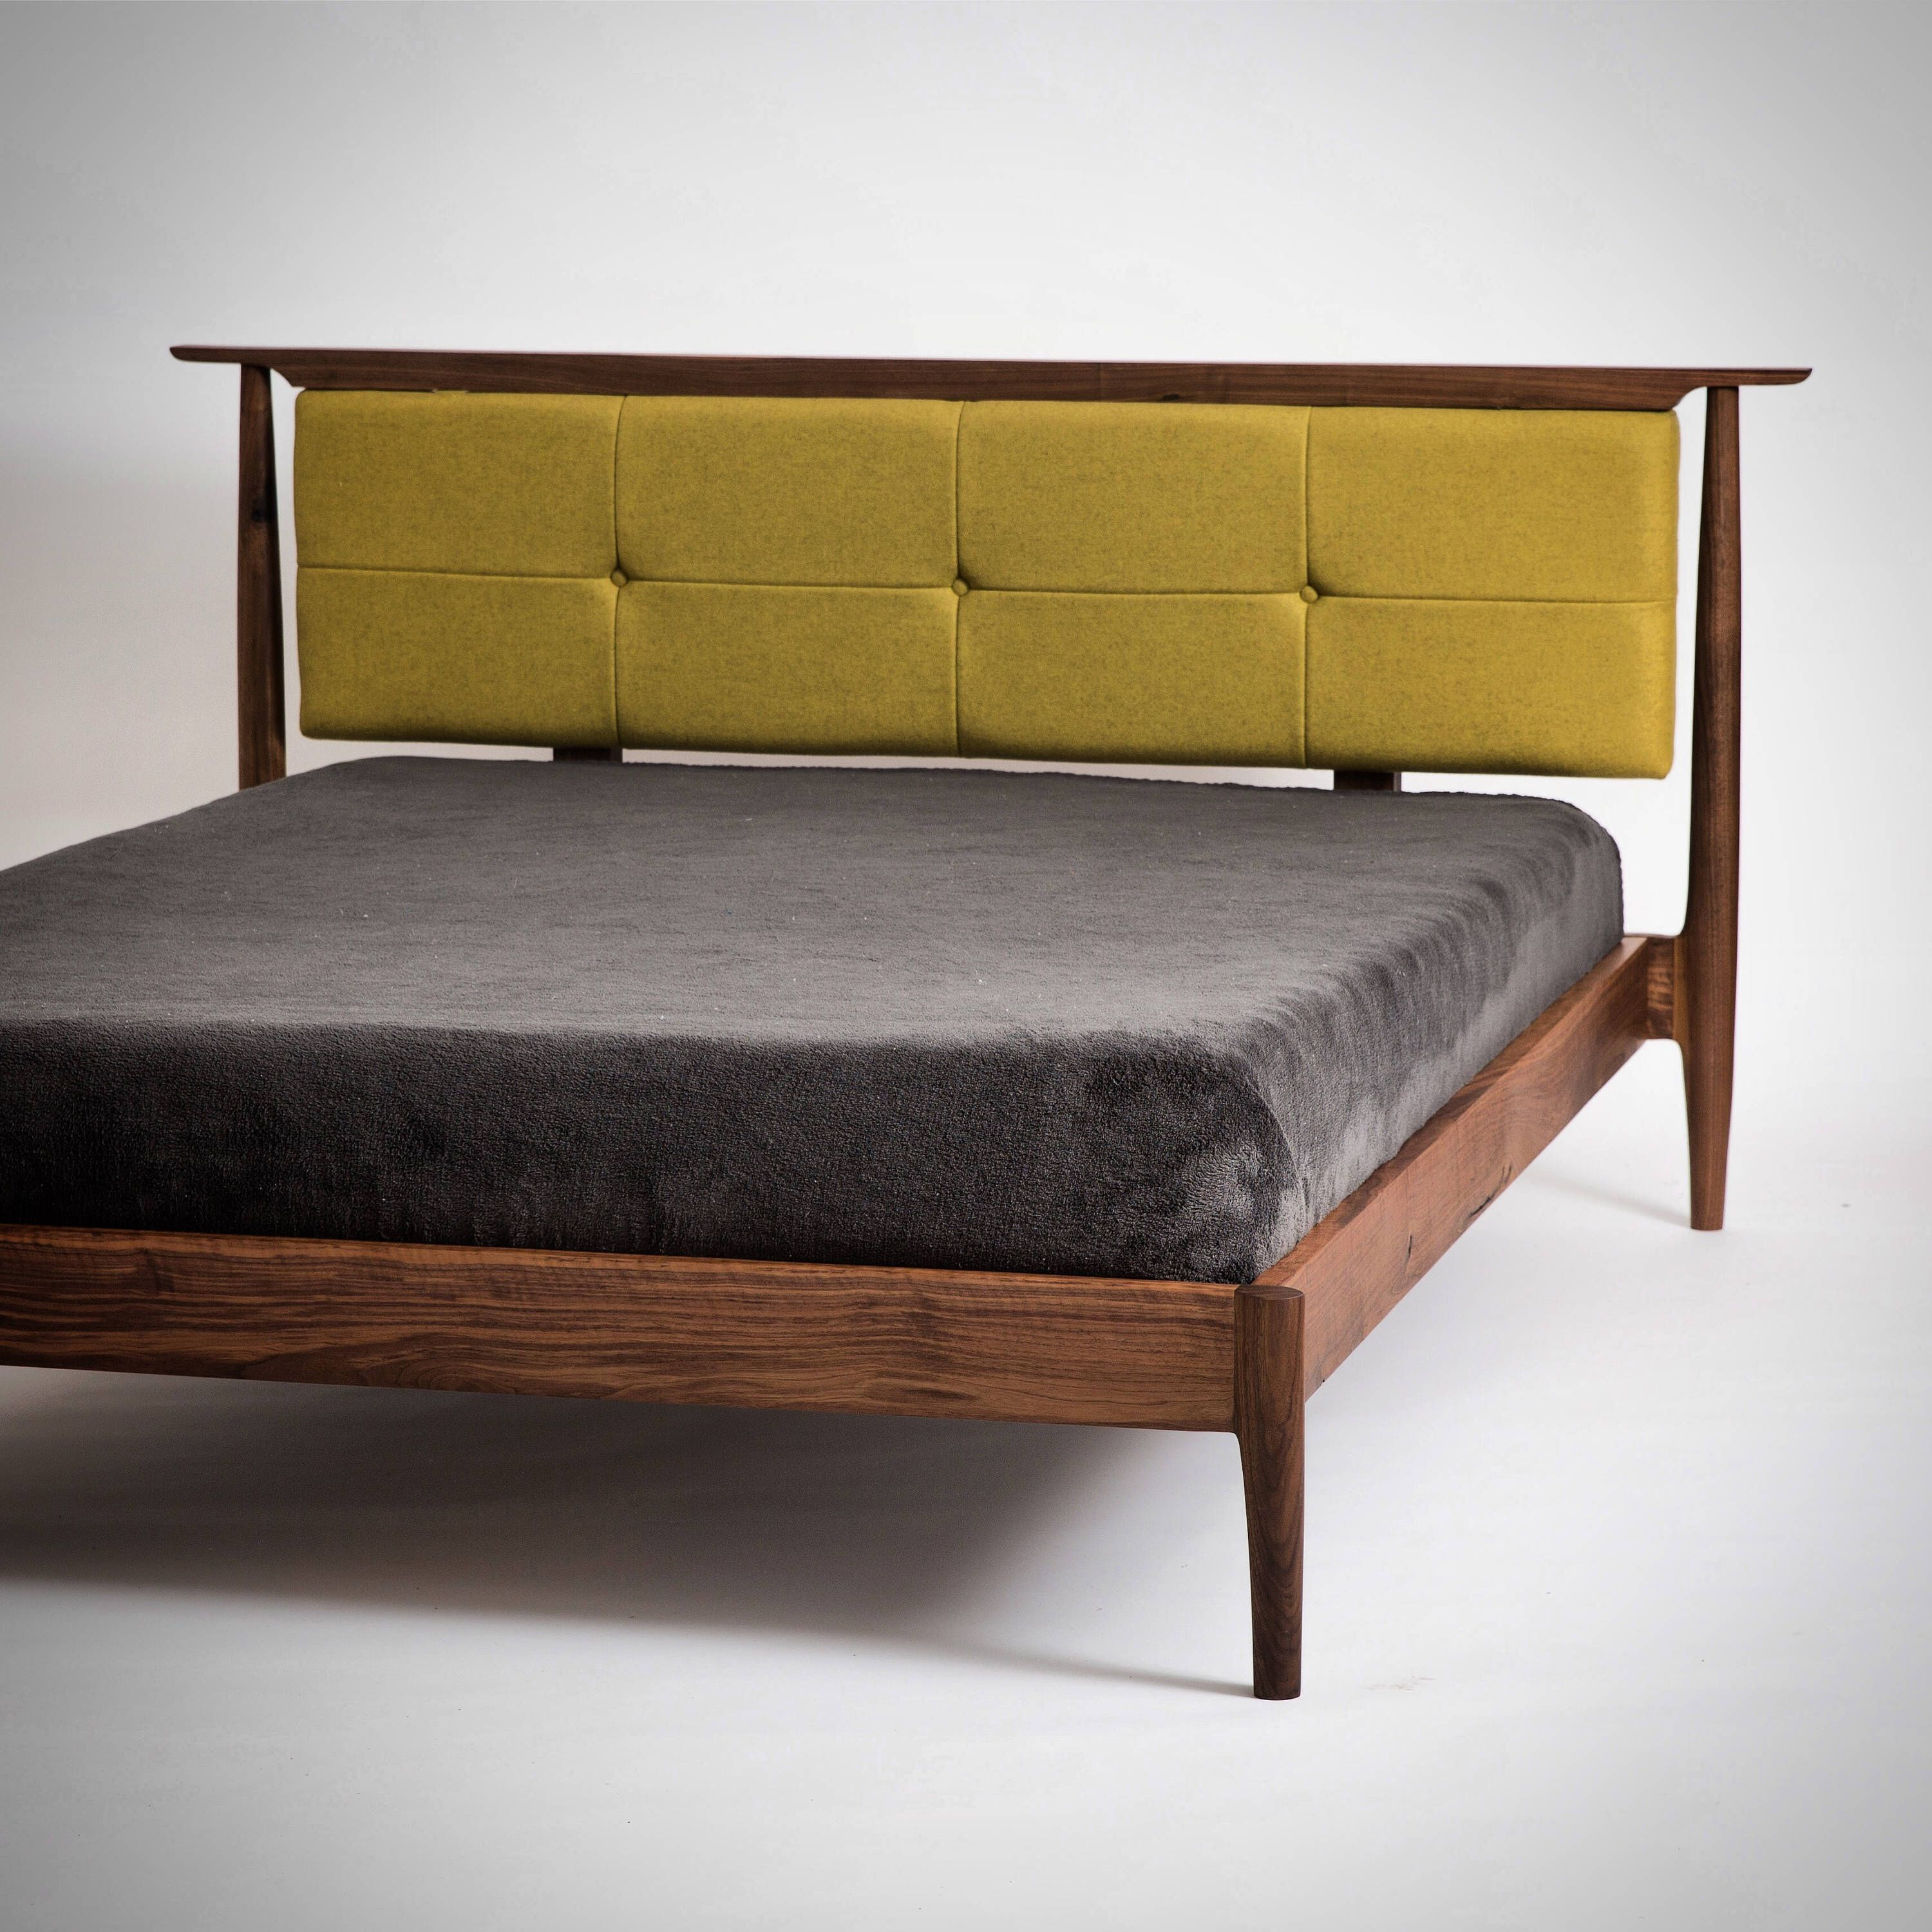 Custom Mid Century Upholstered Platform Bed Hand Crafted Modern